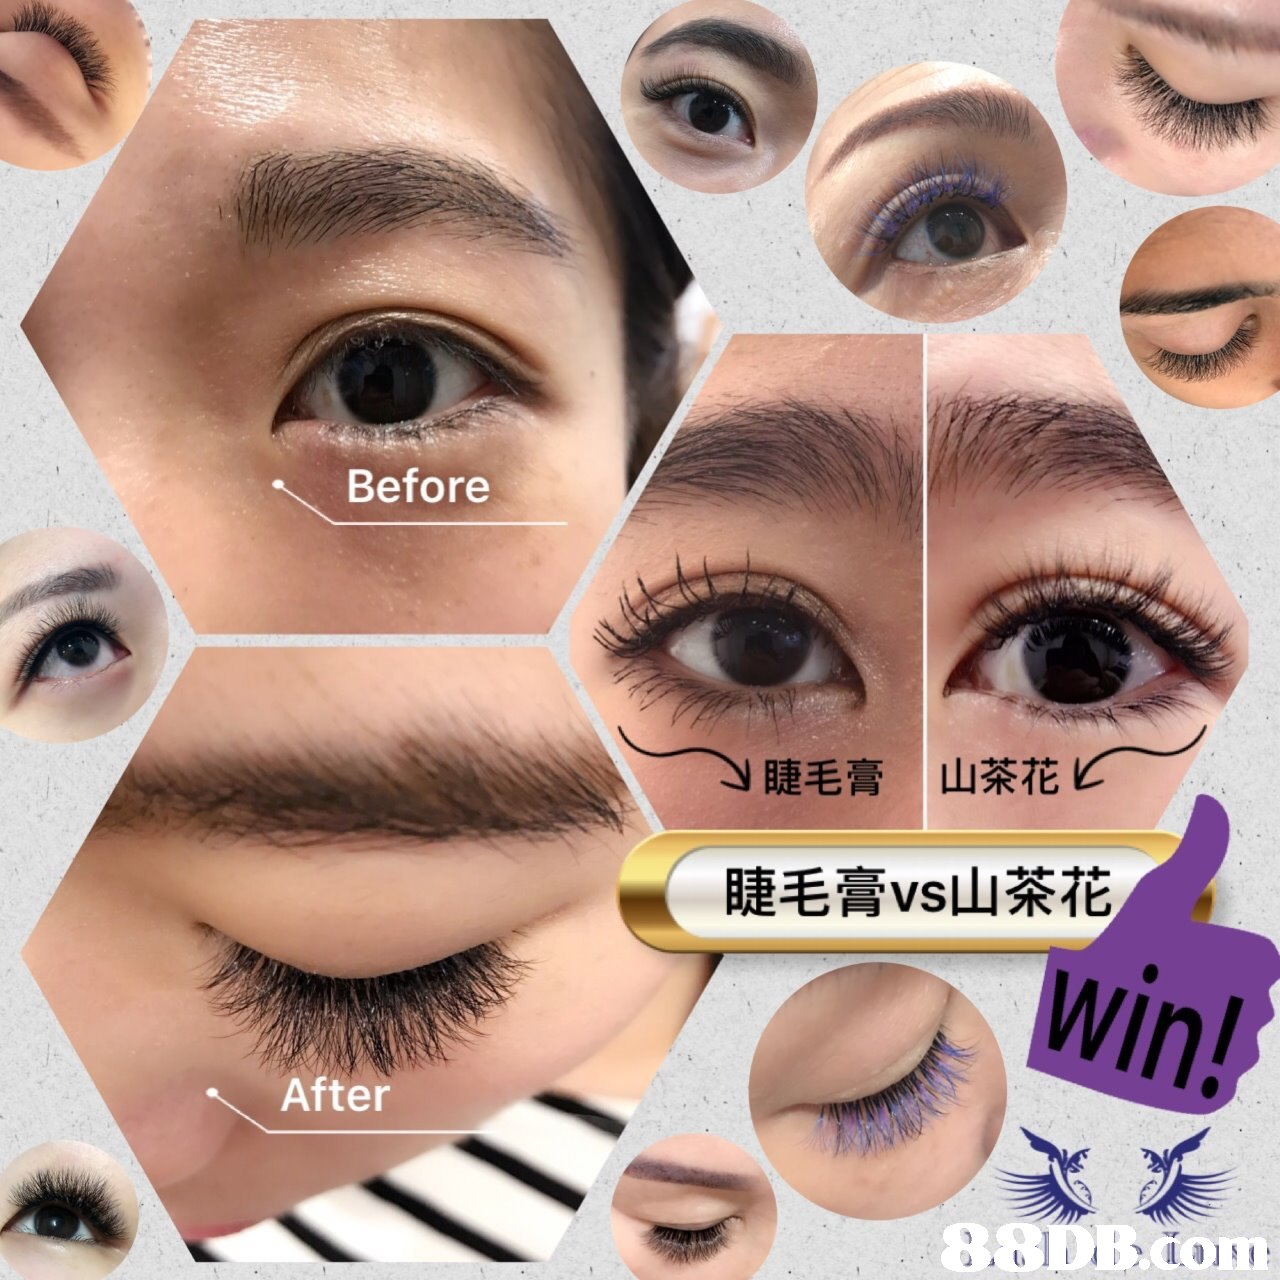 Before 睫毛膏 山茶花 睫毛膏vs山茶花 After  eyebrow,eyelash,eye shadow,eye,nose